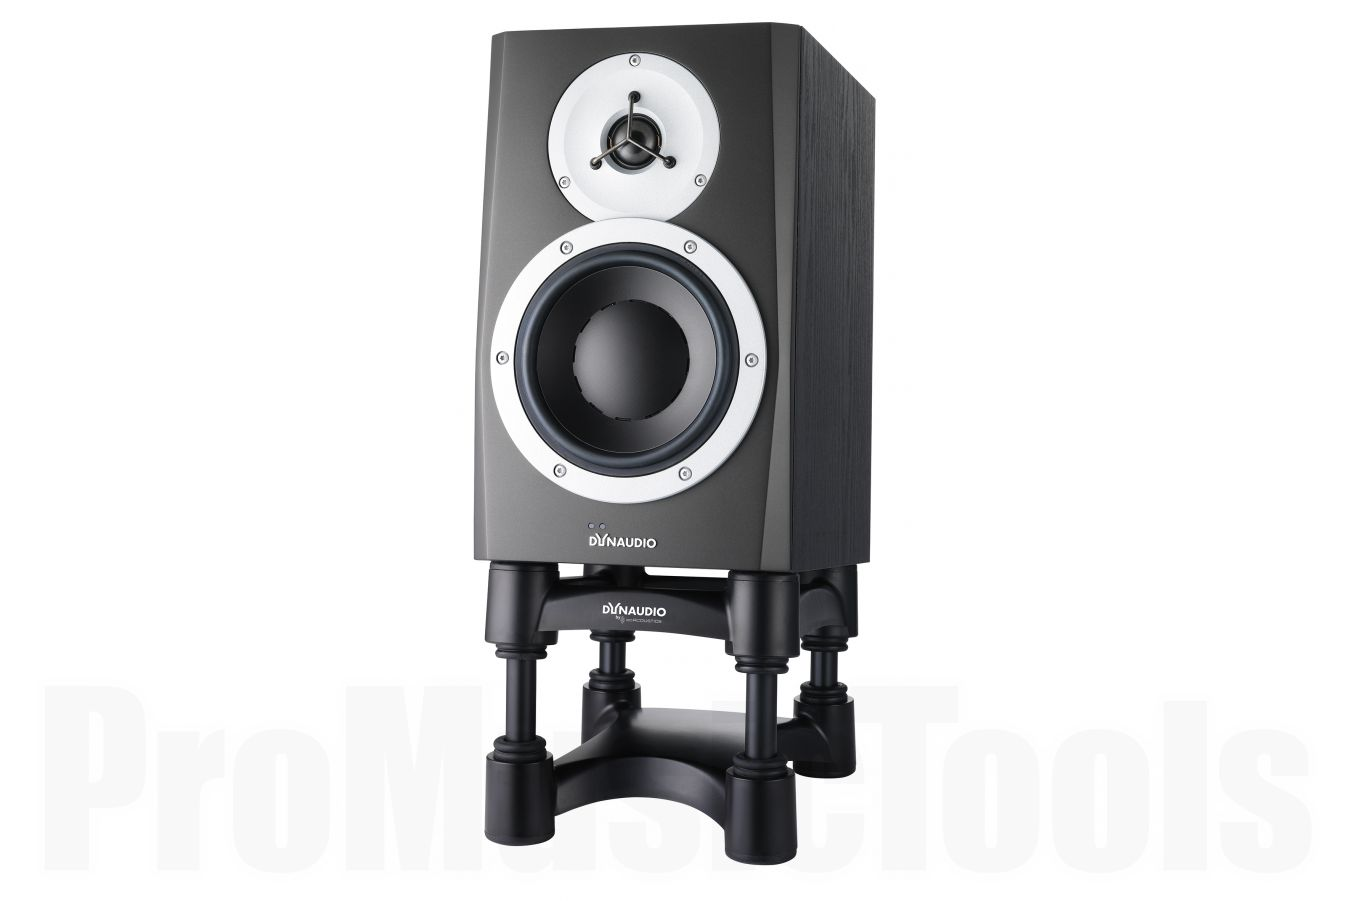 Dynaudio BM6 mkIII incl. IsoAcoustics ISO-L8R200 speaker stand - b-stock (1x opened box)